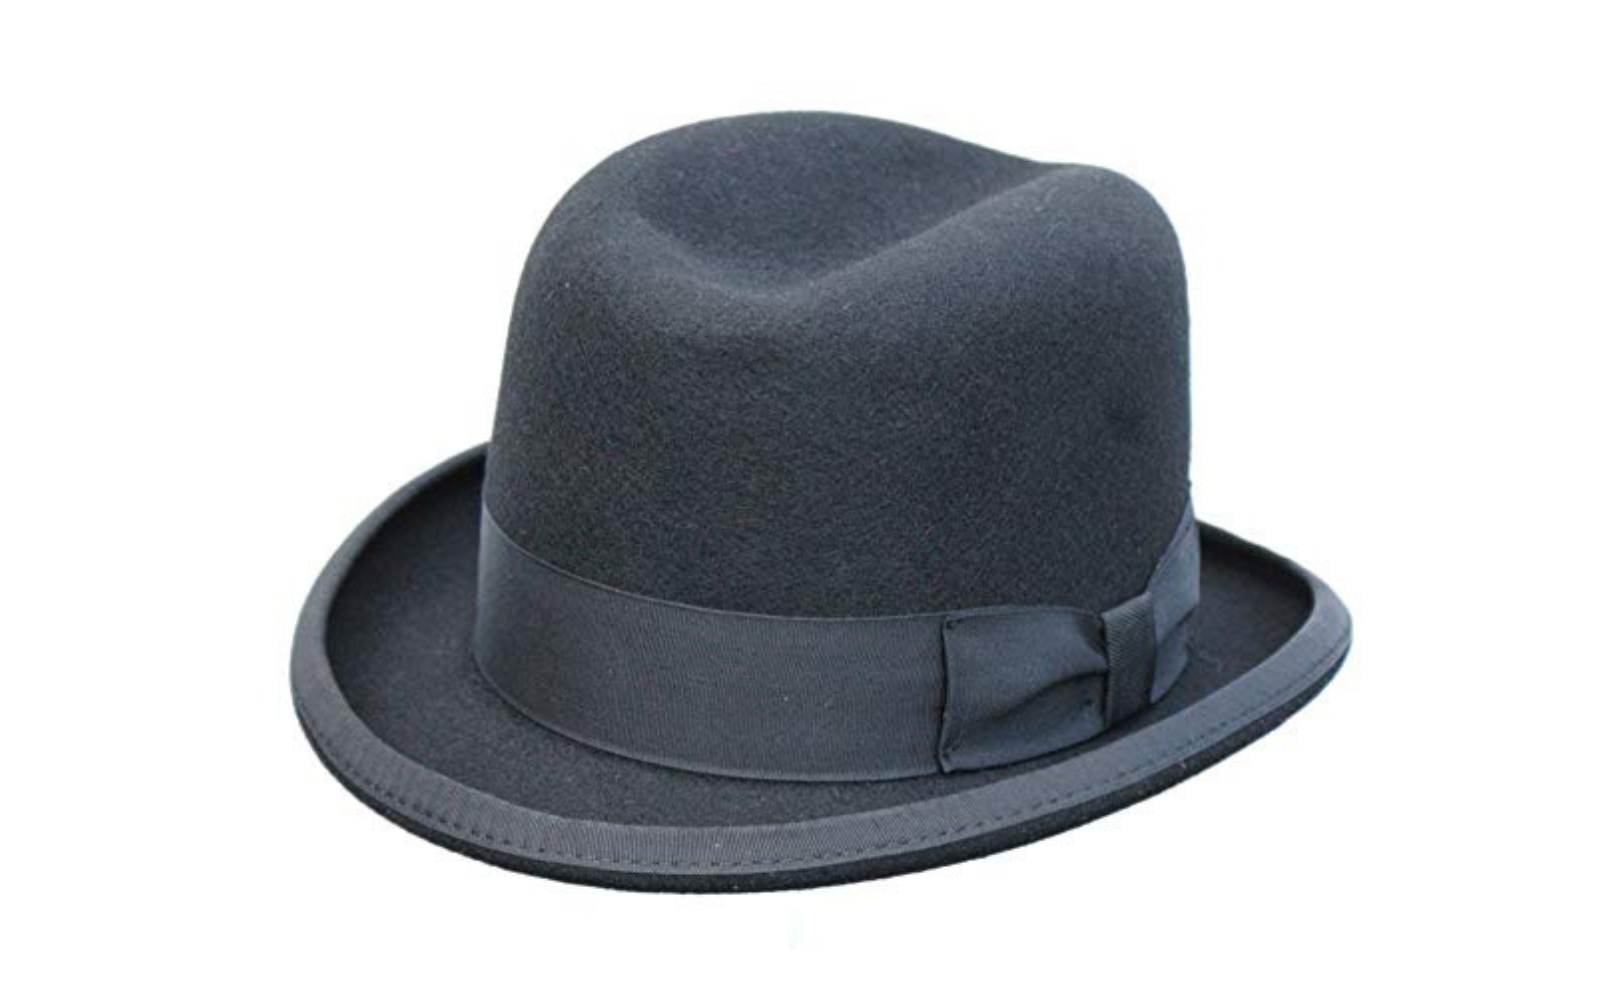 https://www.amazon.co.uk/Mens-Traditional-Black-Homburg-Hat/dp/B00D5S3KFG